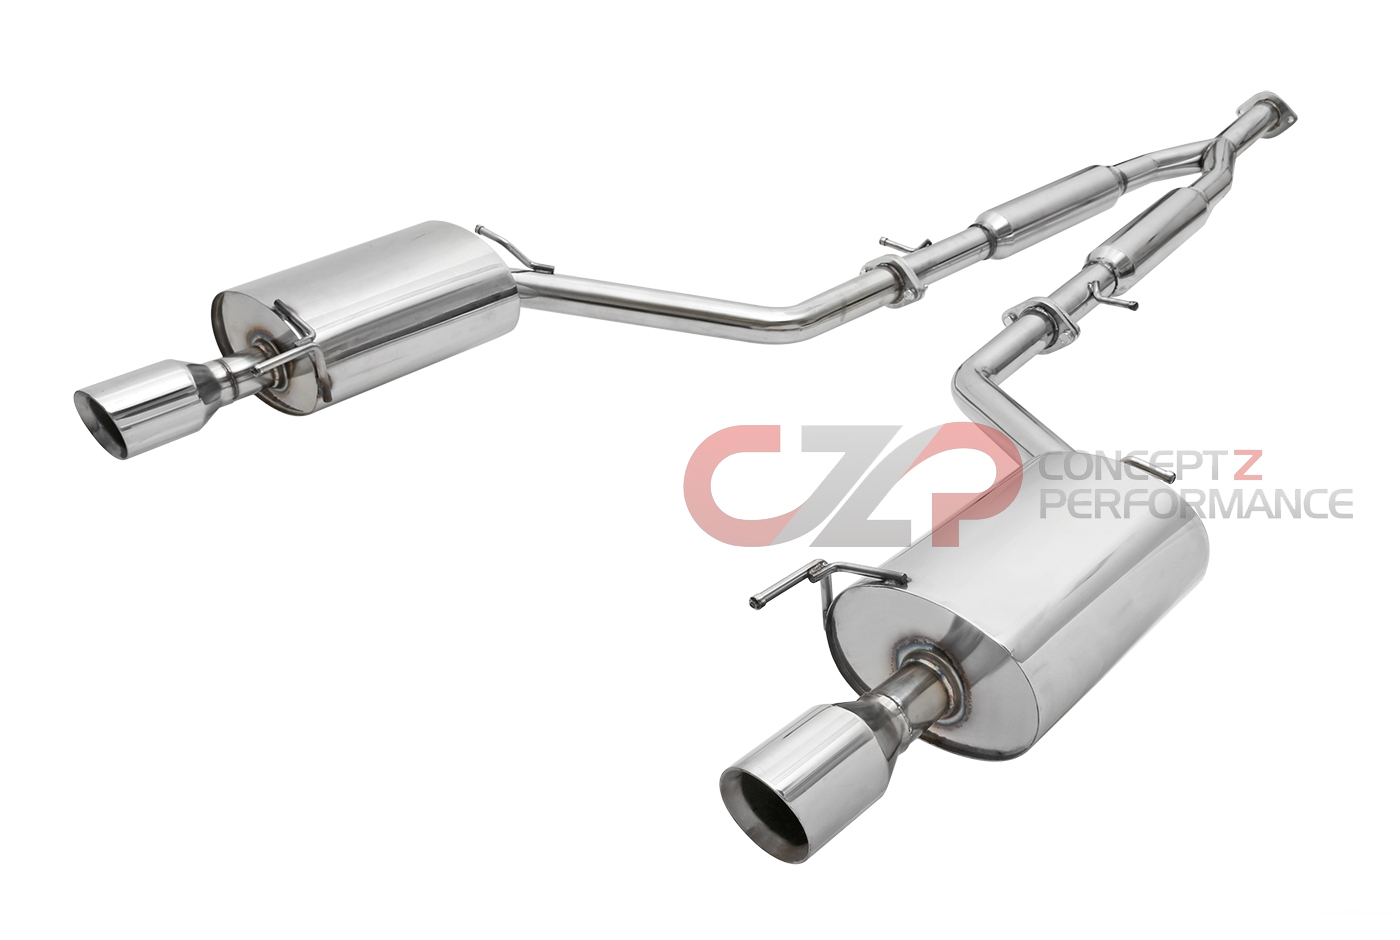 v36 exhaust system exhaust systems kits concept z performance